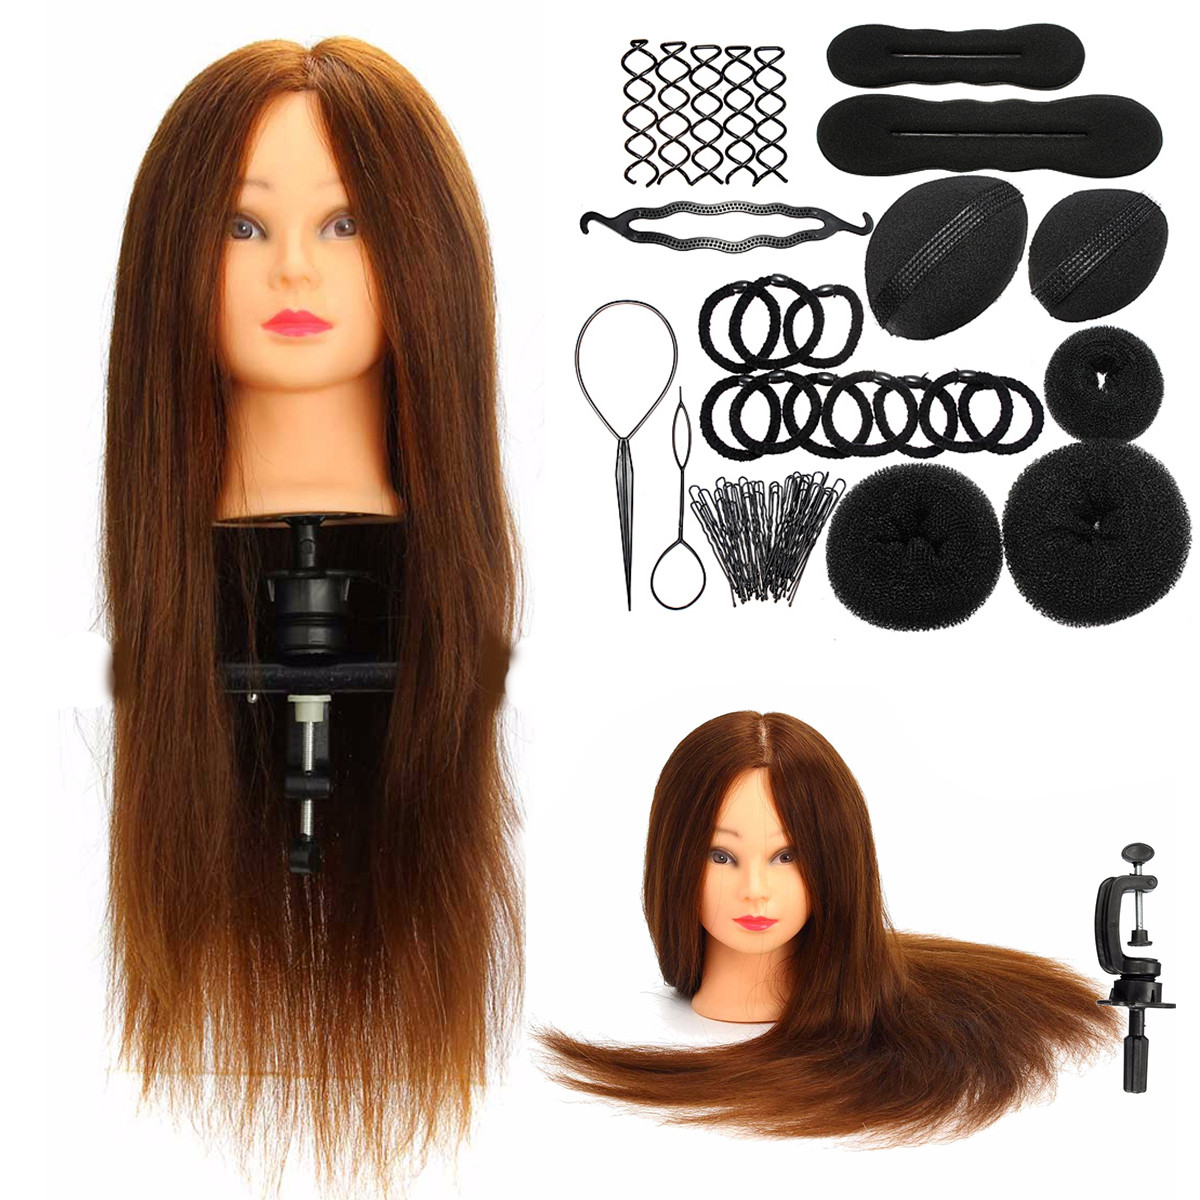 "24"" 100% Rea Hair Salon Hairdressing  Mannequin Practice Training Head +Braid Set+ Clamp"